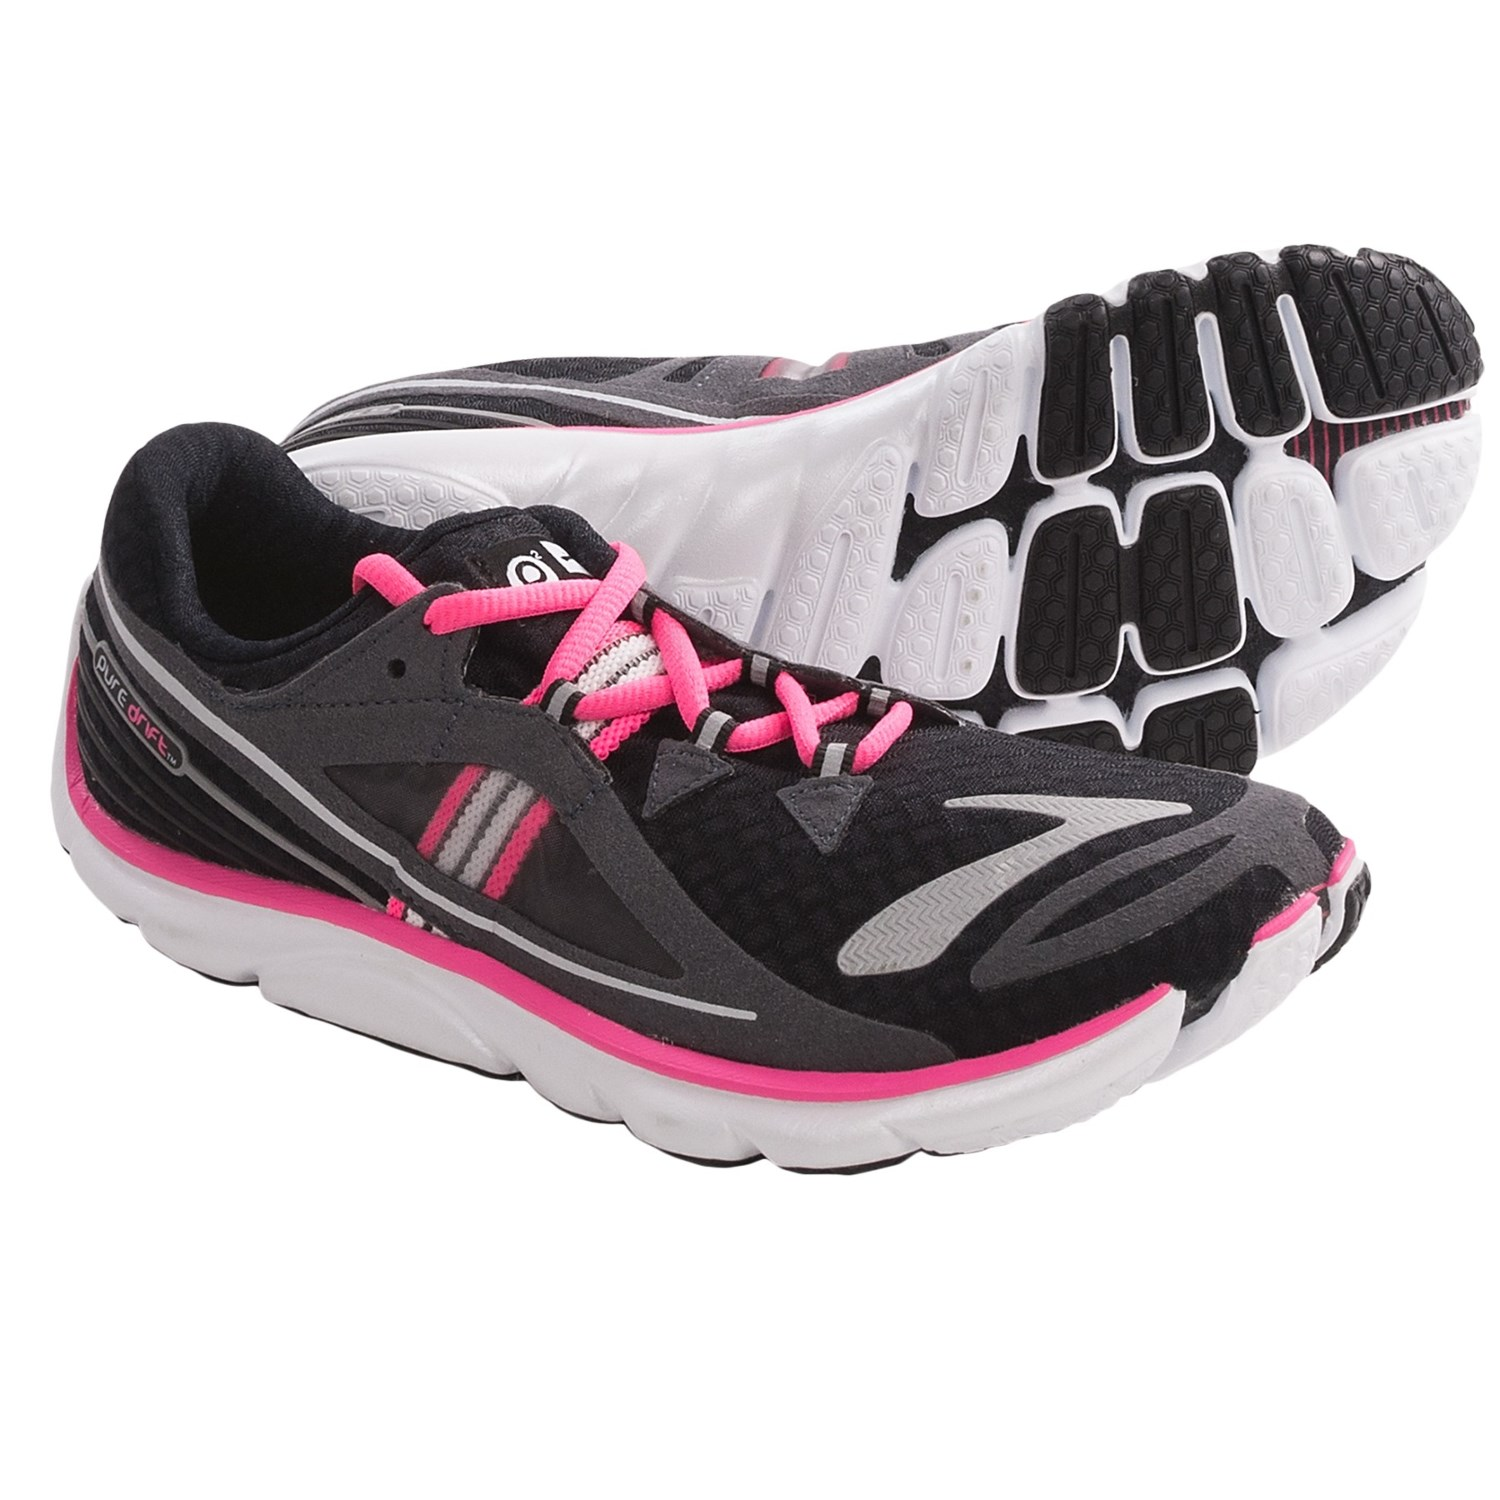 Nike Clearance Womens Running Shoes